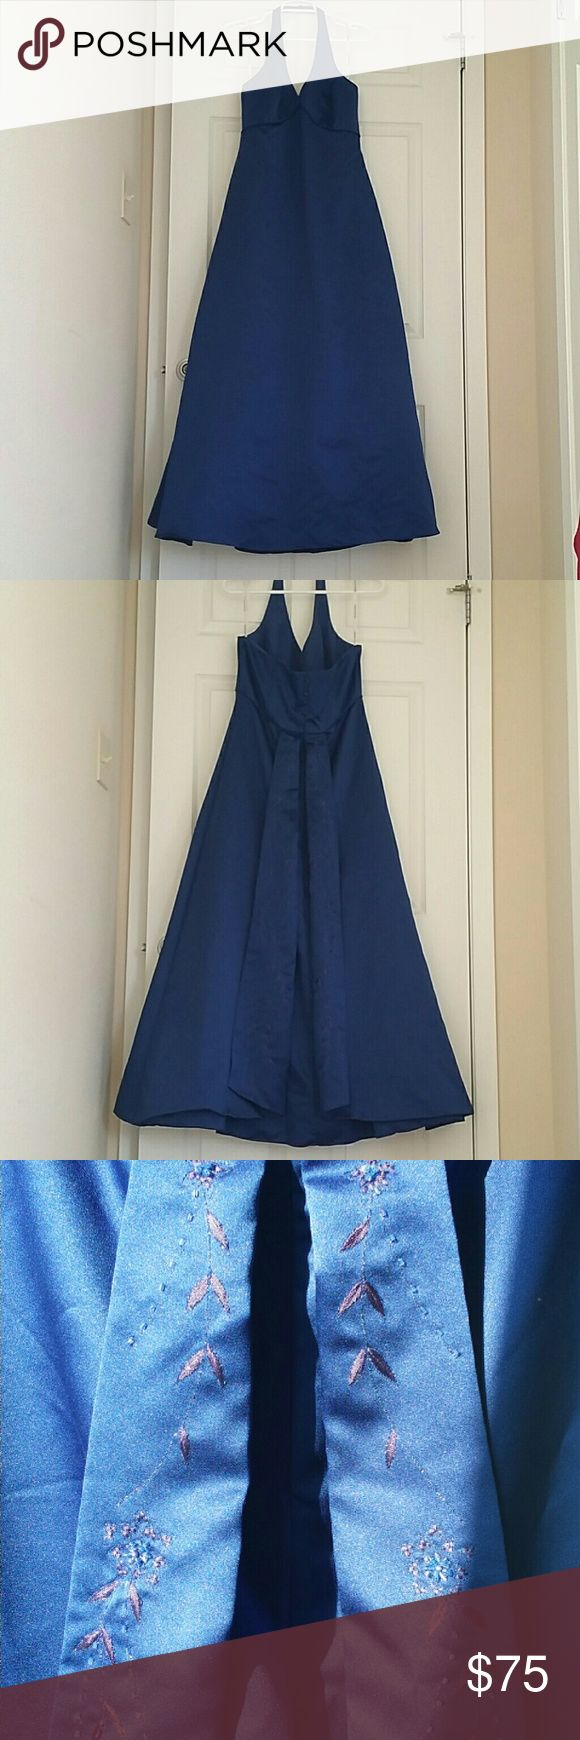 Royal Navy Formal dress. Worn once as a Maid of Honor dress. Good condition  Been stored in a box in my closet so could probably use another dry cleaning and pressing. Need it gone, downsized and have less closet space. Make an offer. David's Bridal Dresses